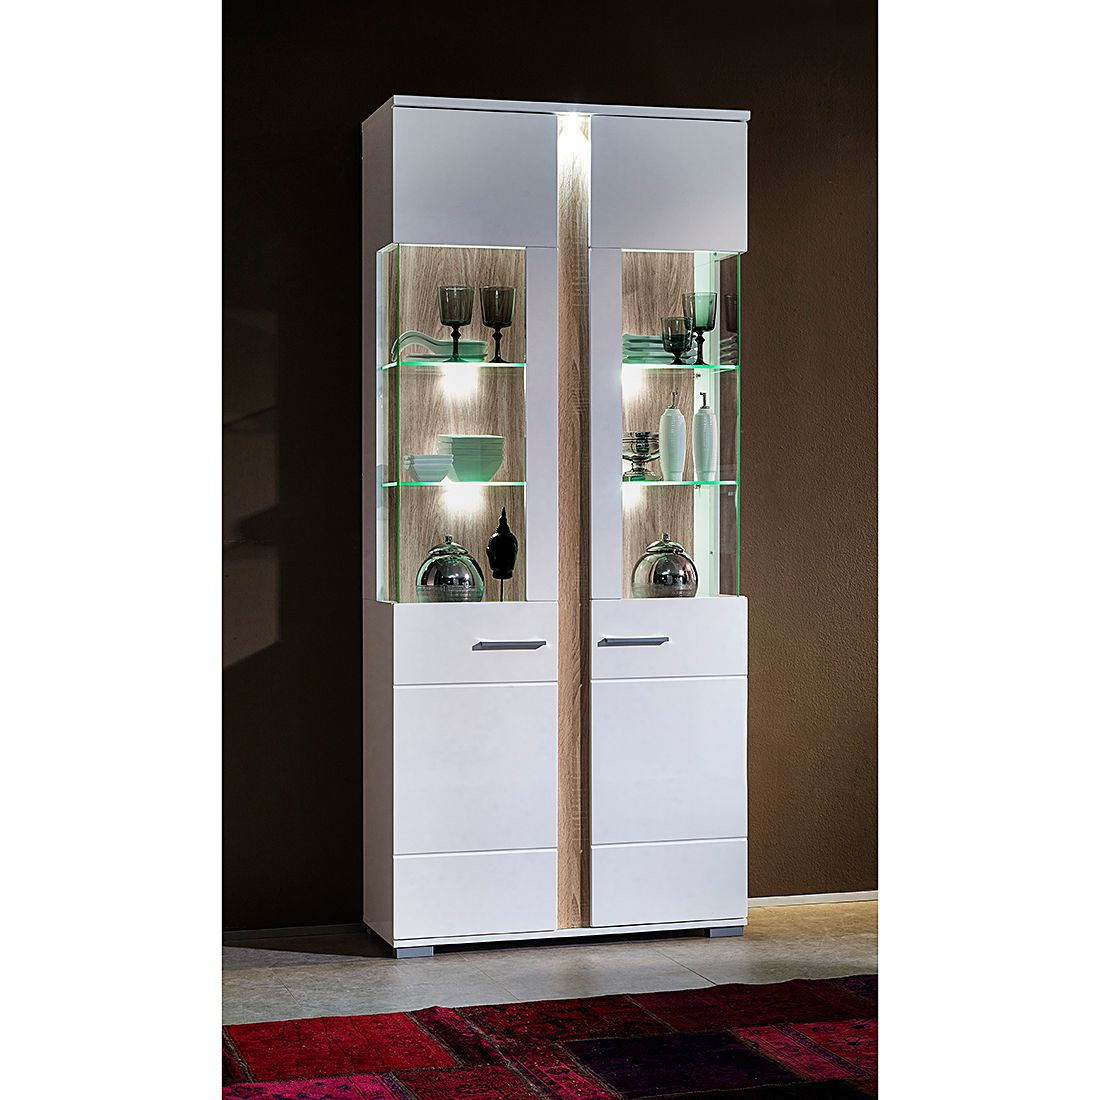 standvitrine glasvitrine sammlervitrine vitrinenschrank spiegel beleuchtet vitrine weiss smash. Black Bedroom Furniture Sets. Home Design Ideas